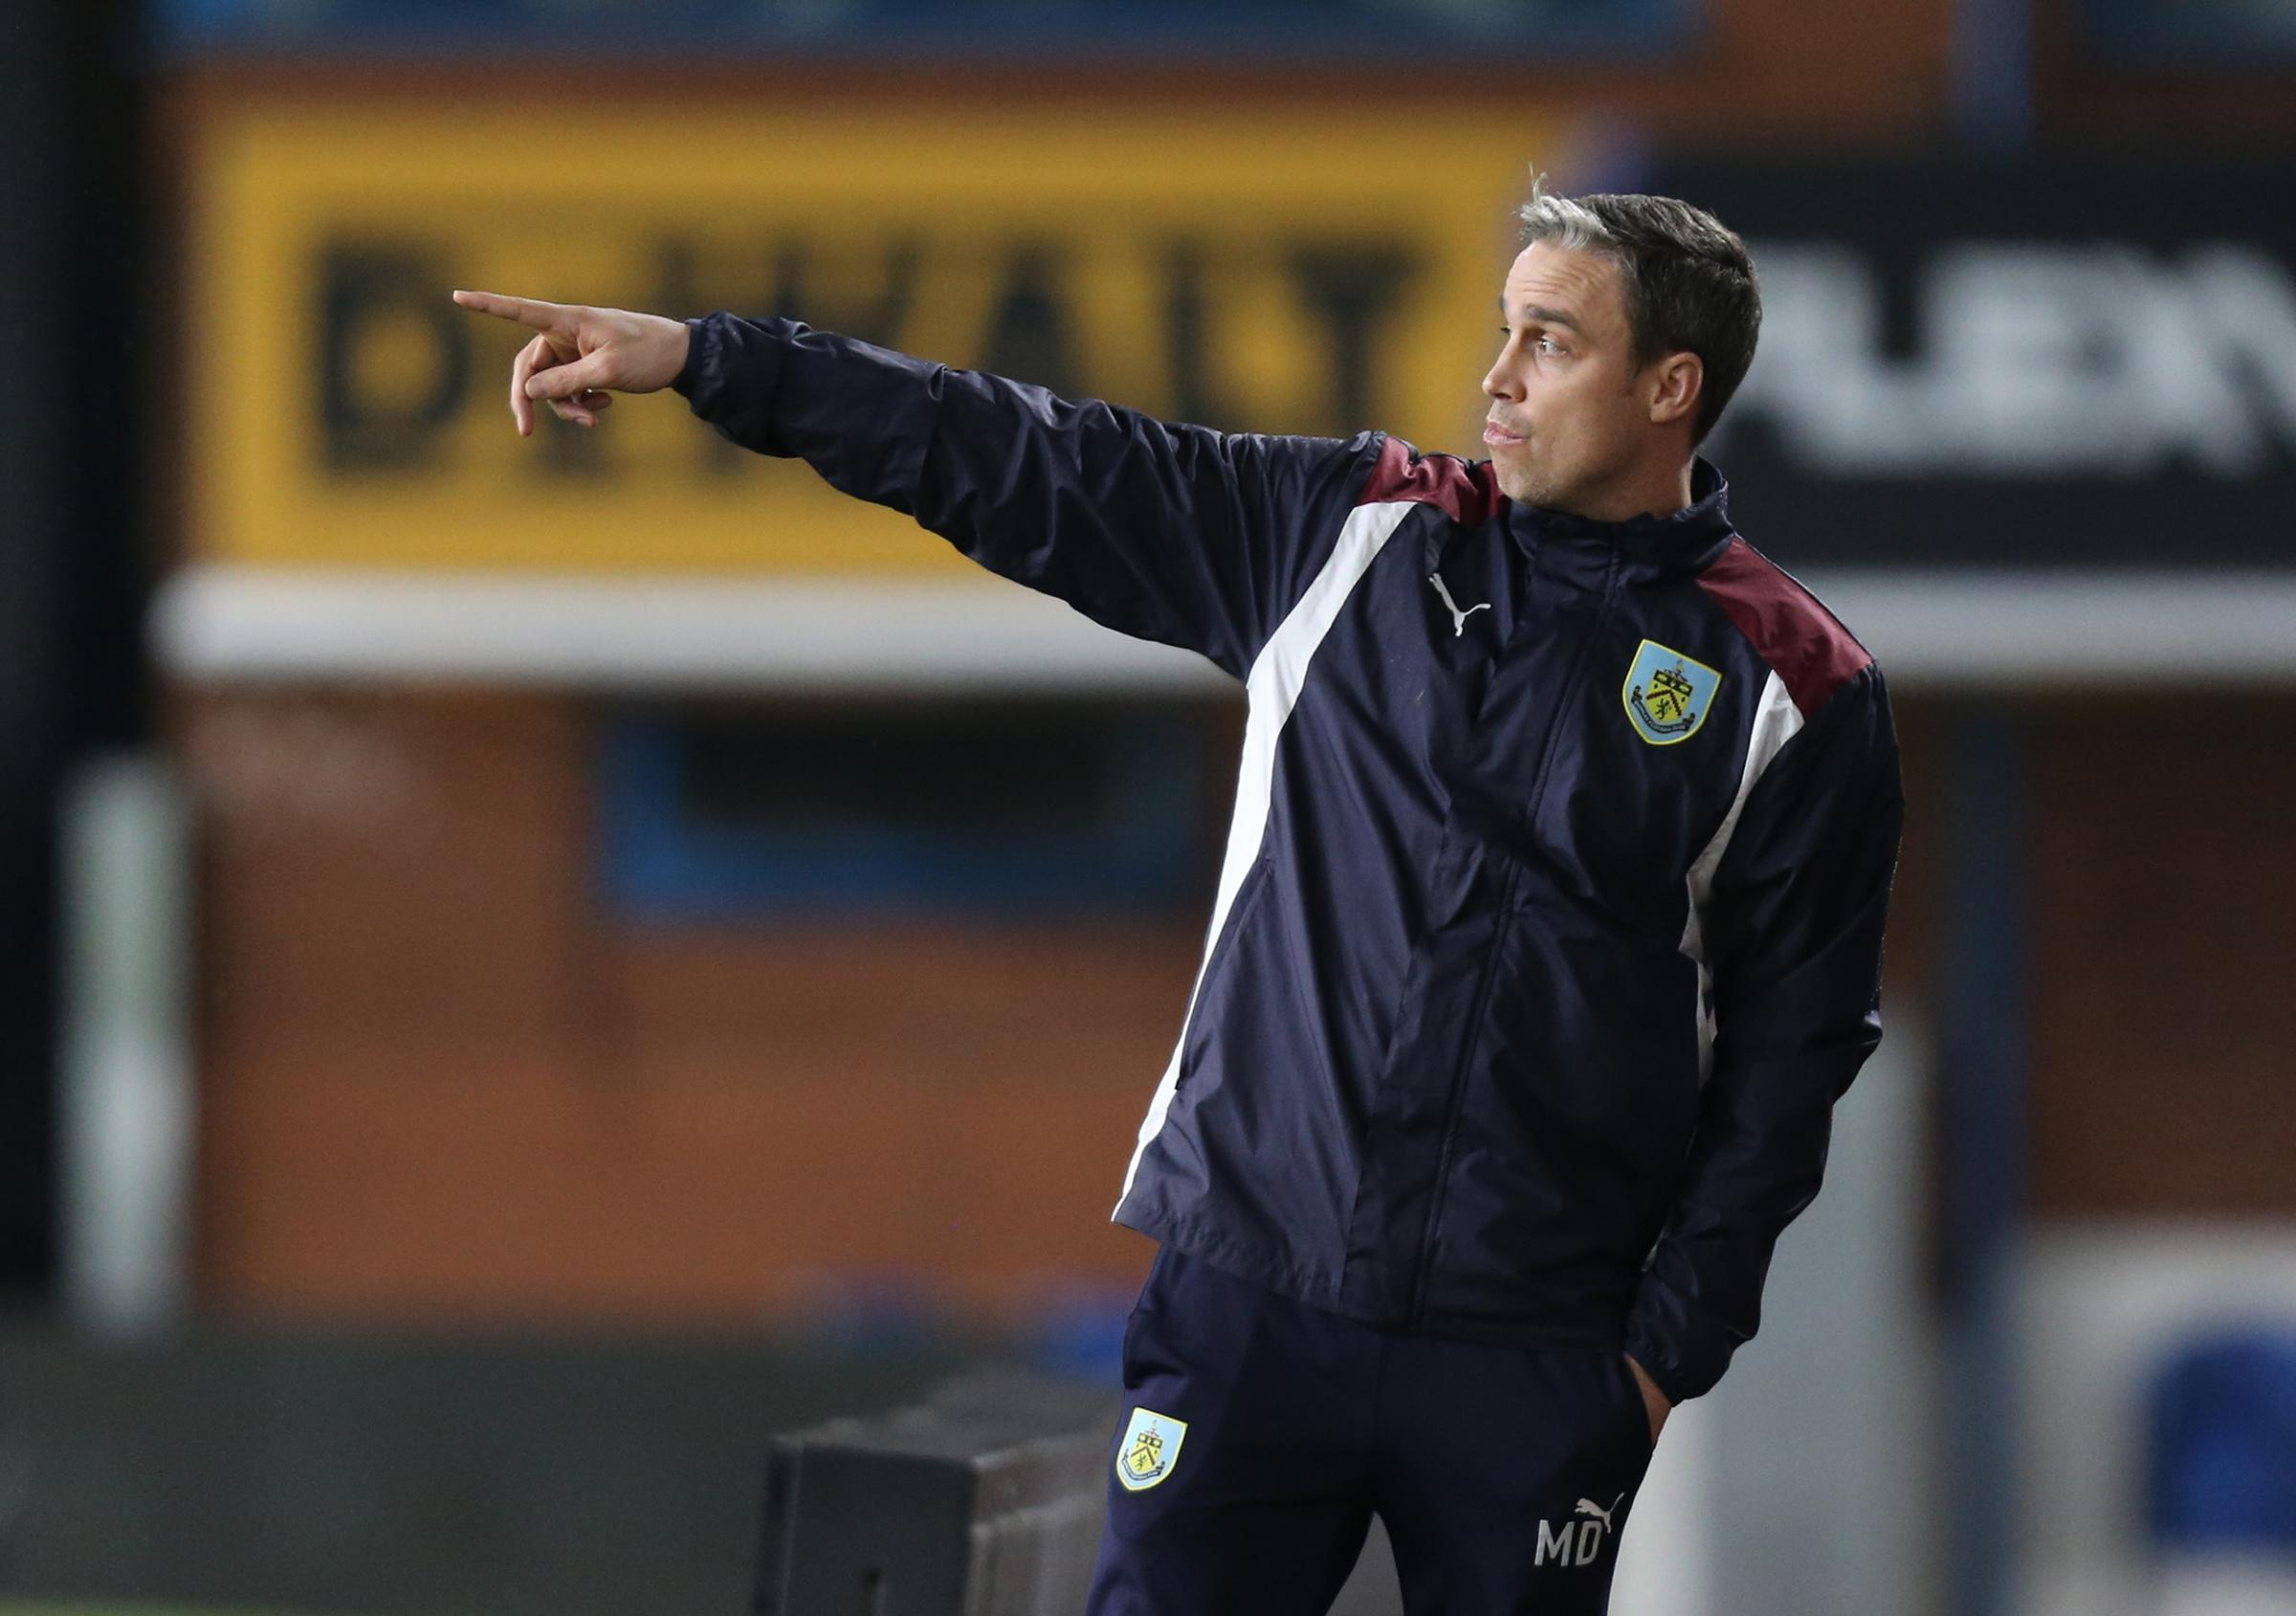 Michael Duff takes his Under-23 side to Turf Moor for the first time this season today